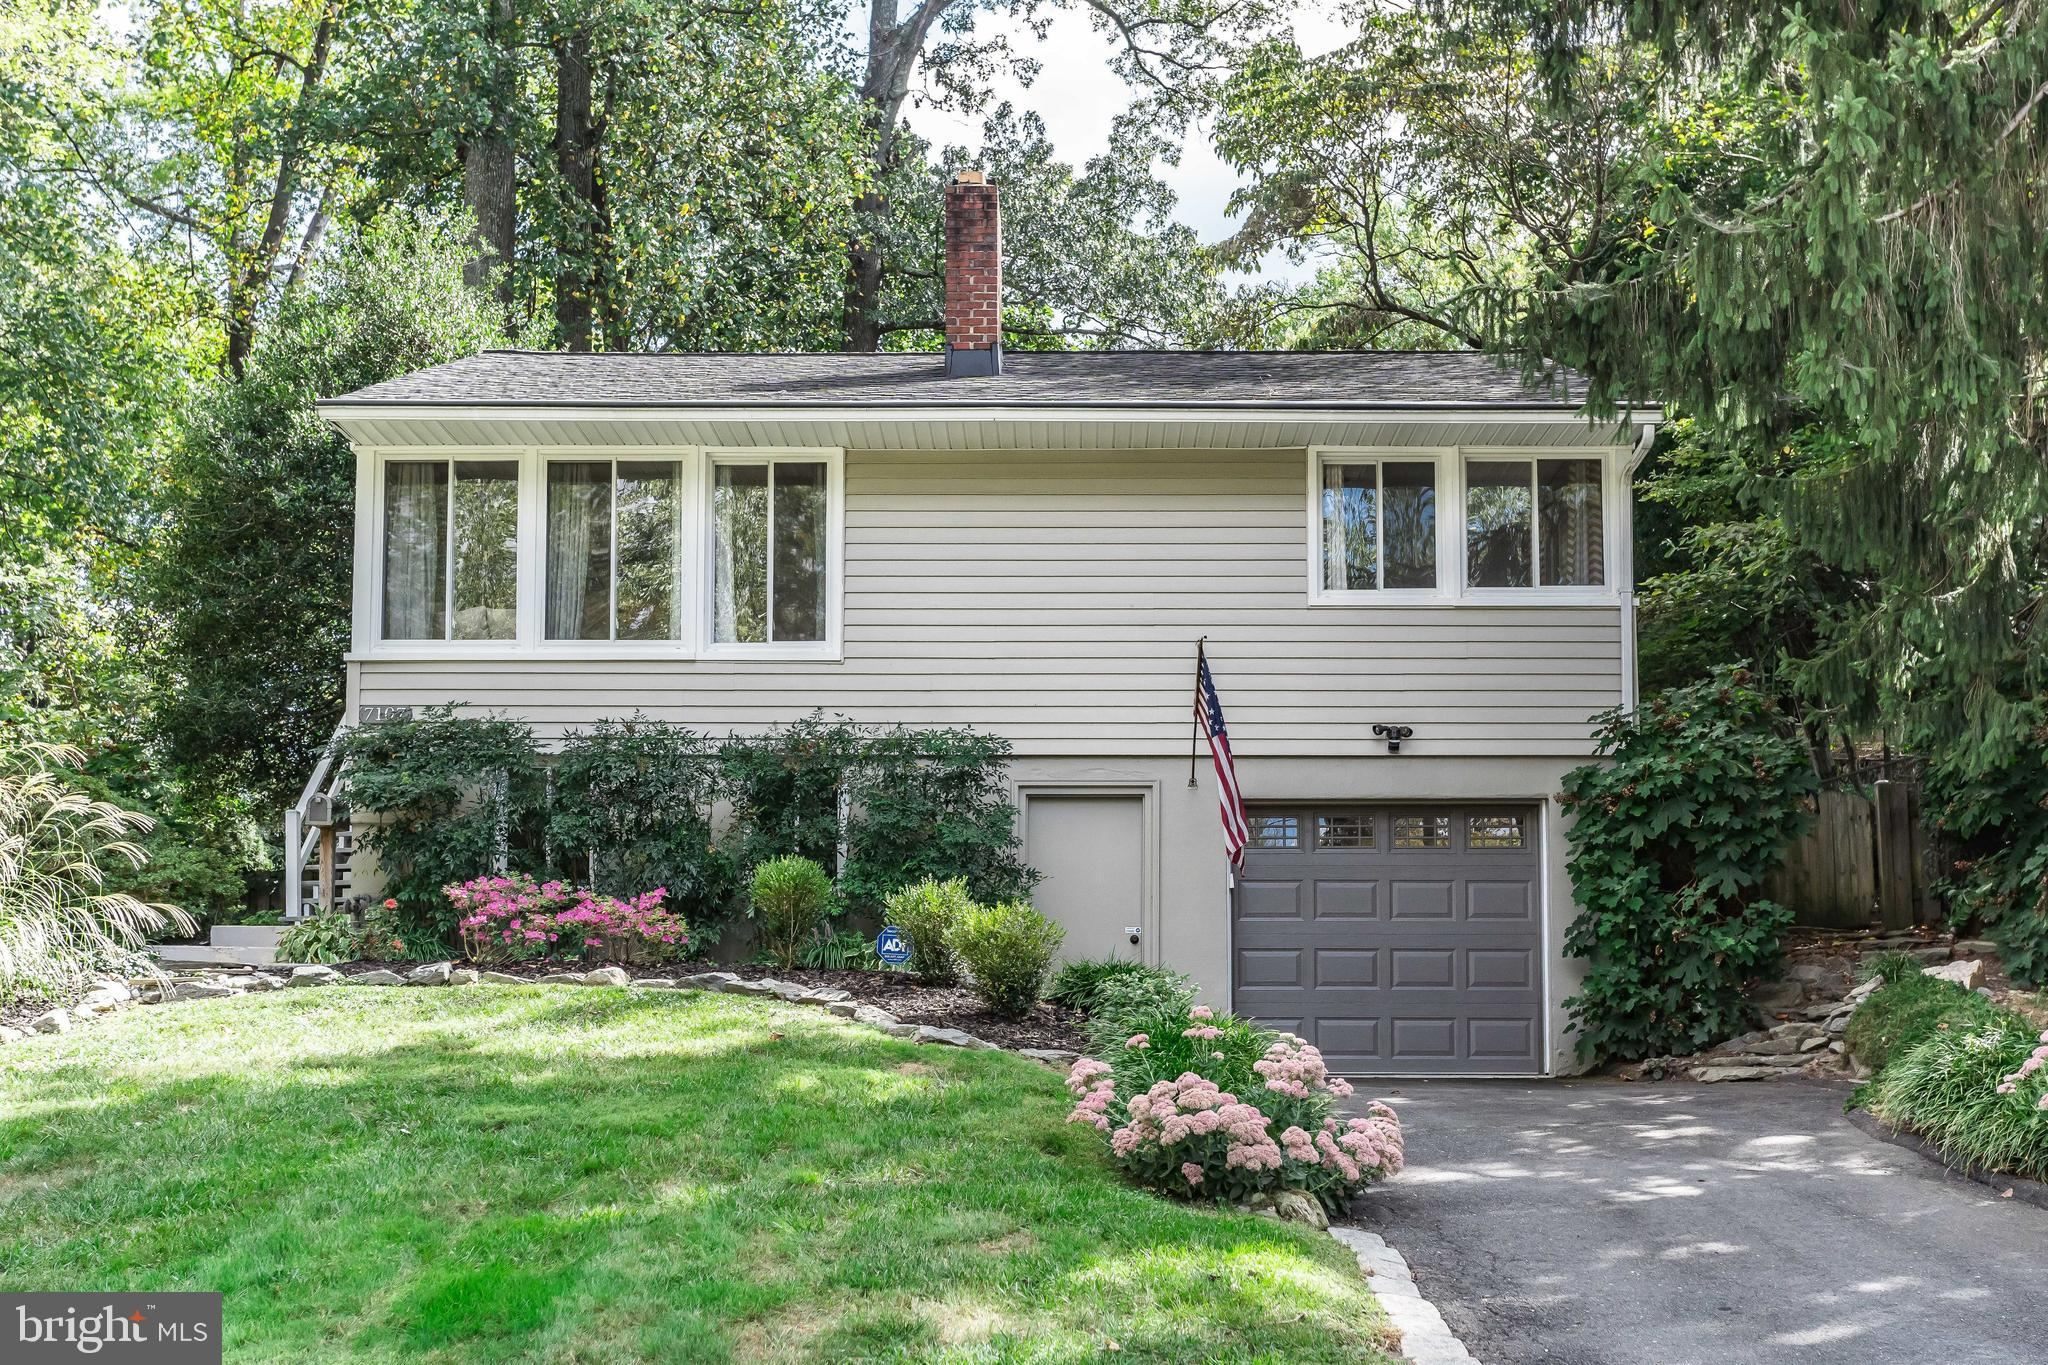 Incredible opportunity in this highly sought after Falls Church location. With over 1,400 sqft, this home is picture perfect, sited on a quarter acre lot! Property boast: new paint (inside and out), new basement flooring, added fencing, new light fixture in breakfast area, updated landscaping, new concrete patio with fire pit and so much more! The abundance of windows on the main level offers lots of natural light. Hardwood flooring throughout the main level. The living room features a wood burning fireplace with whitewashed brick wall and built-ins. Updated kitchen with stainless steel appliances and granite counters. Beautiful porch off the kitchen that opens up to a patterned concrete patio with fire pit. Fully fenced backyard with shed. Oversized one car garage. Close to DC, Mosaic District, 2 miles to East Falls Church Metro and 3 miles to West Falls Church Metro. Tons of shopping, dining and entertainment options nearby. Truly the best value in Falls Church! HMS home warranty in place until 08/30/2020.